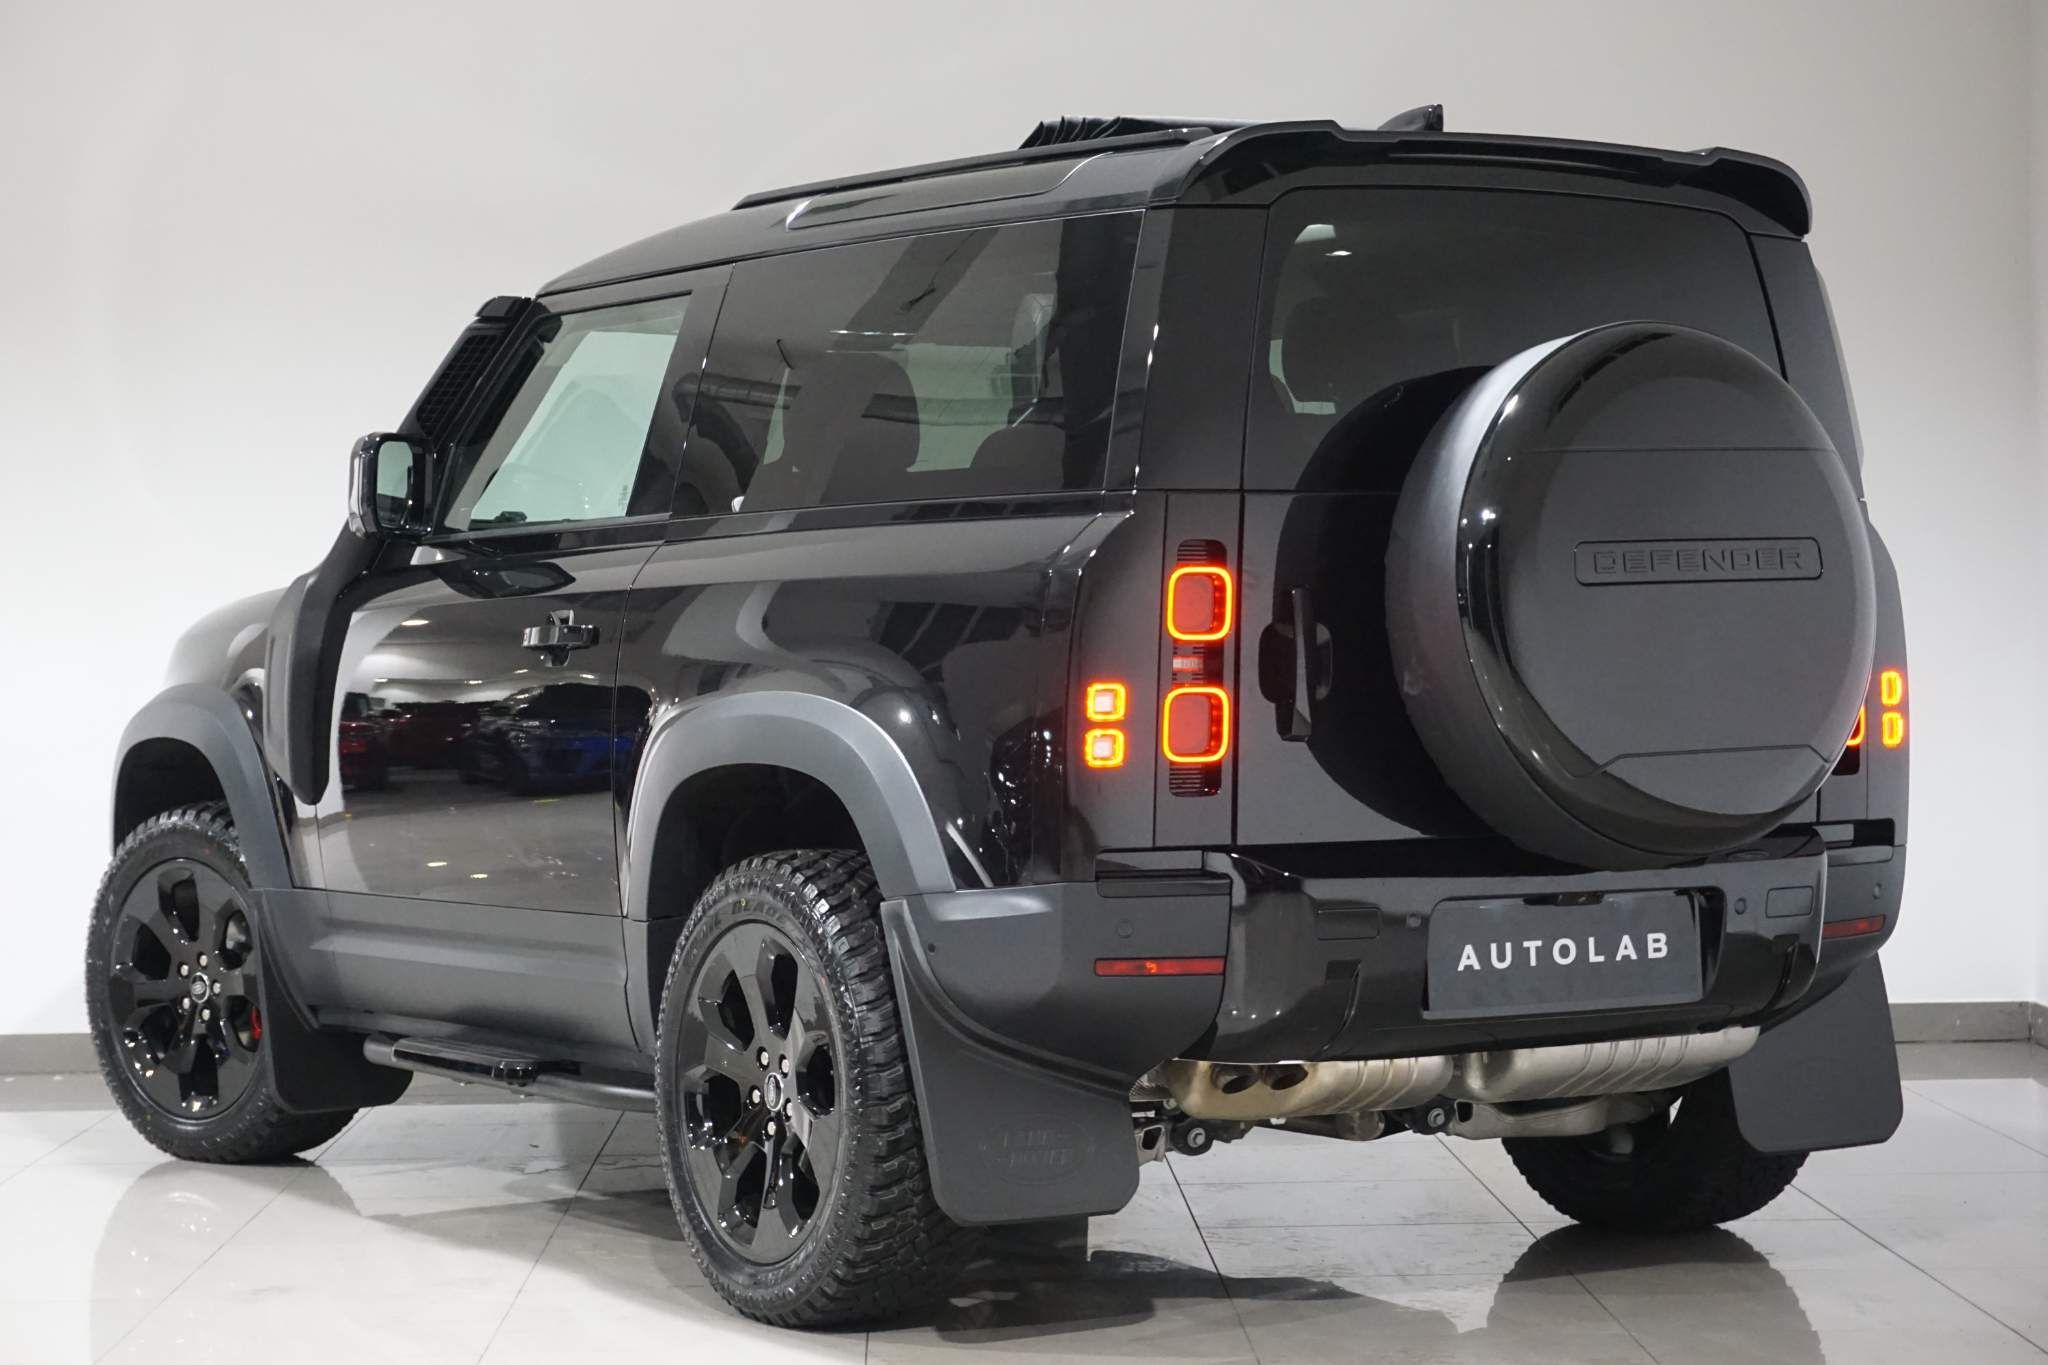 Land Rover Defender 90 3.0 D250 MHEV S Auto 4WD (s/s) 3dr